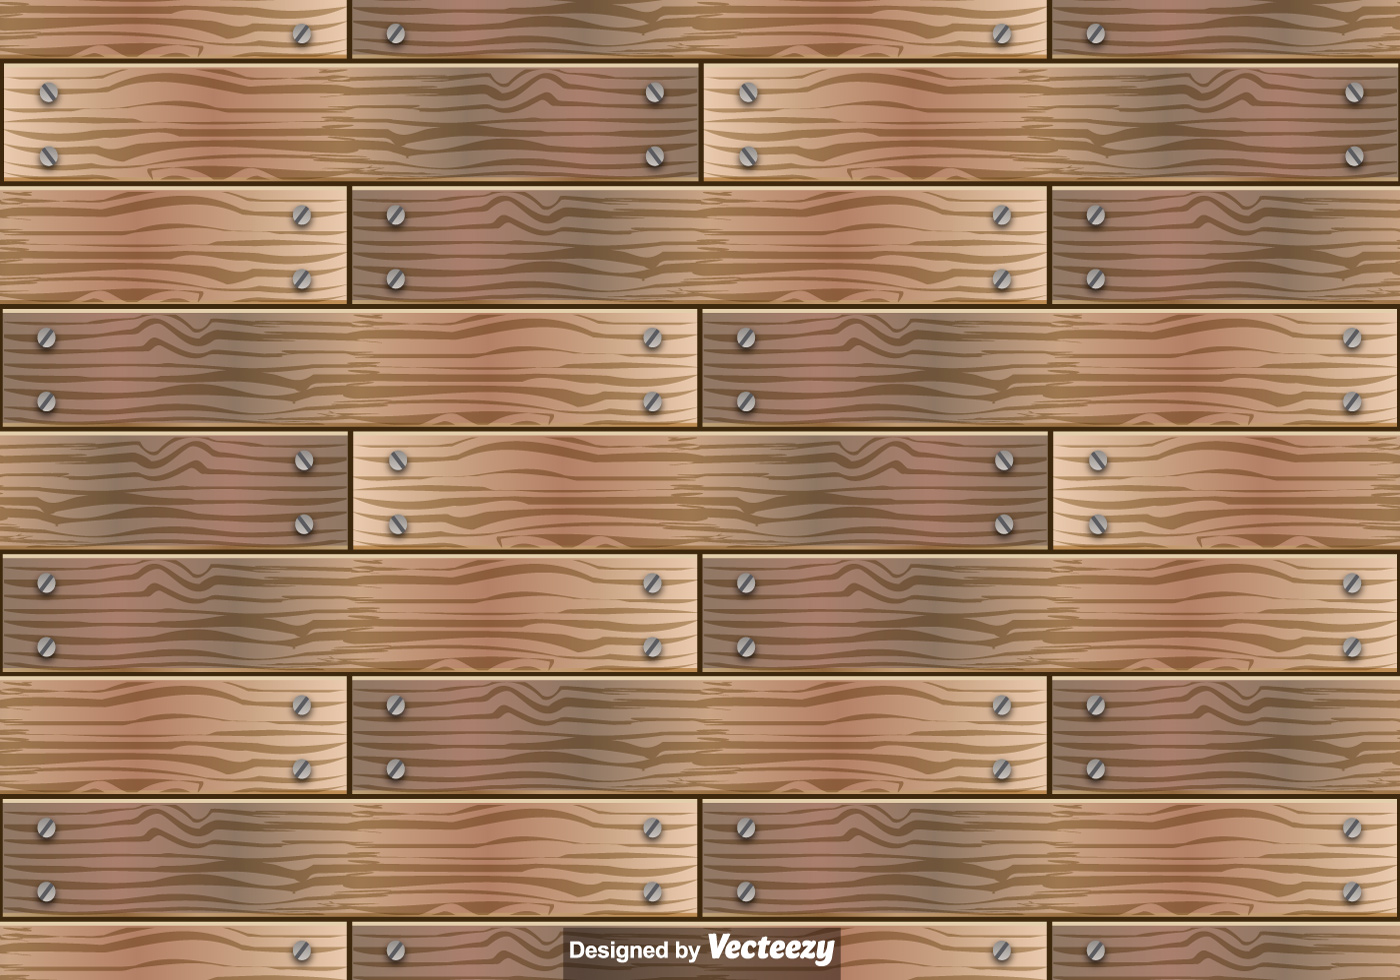 Wooden Planks Vector Seamless Pattern Download Free